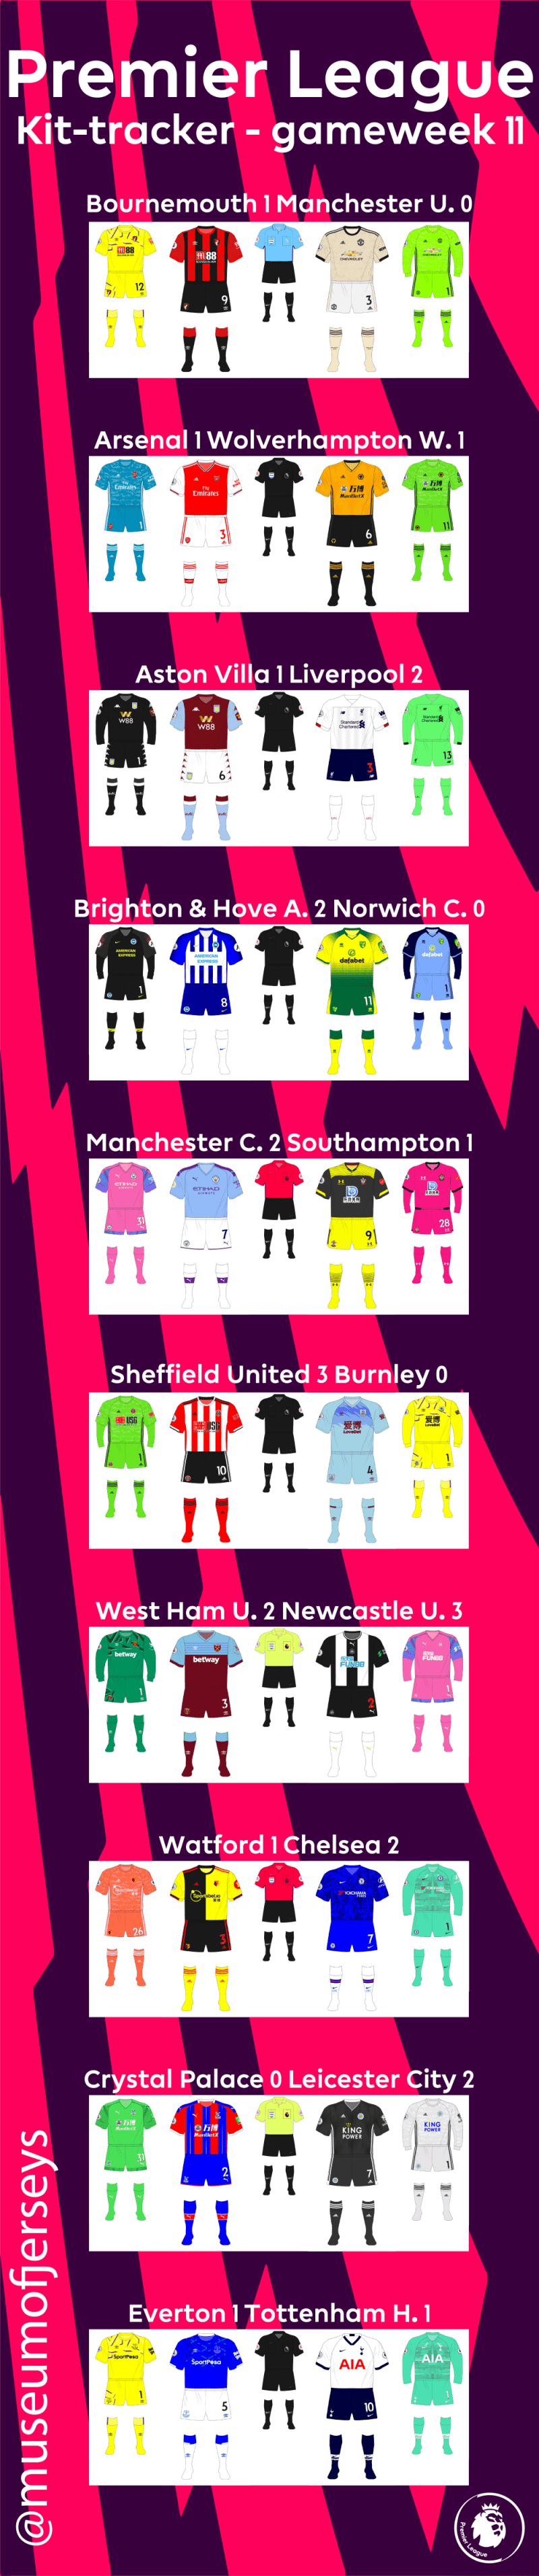 2019-2020-Premier-League-Kit-Tracker-Gameweek-11-long-01